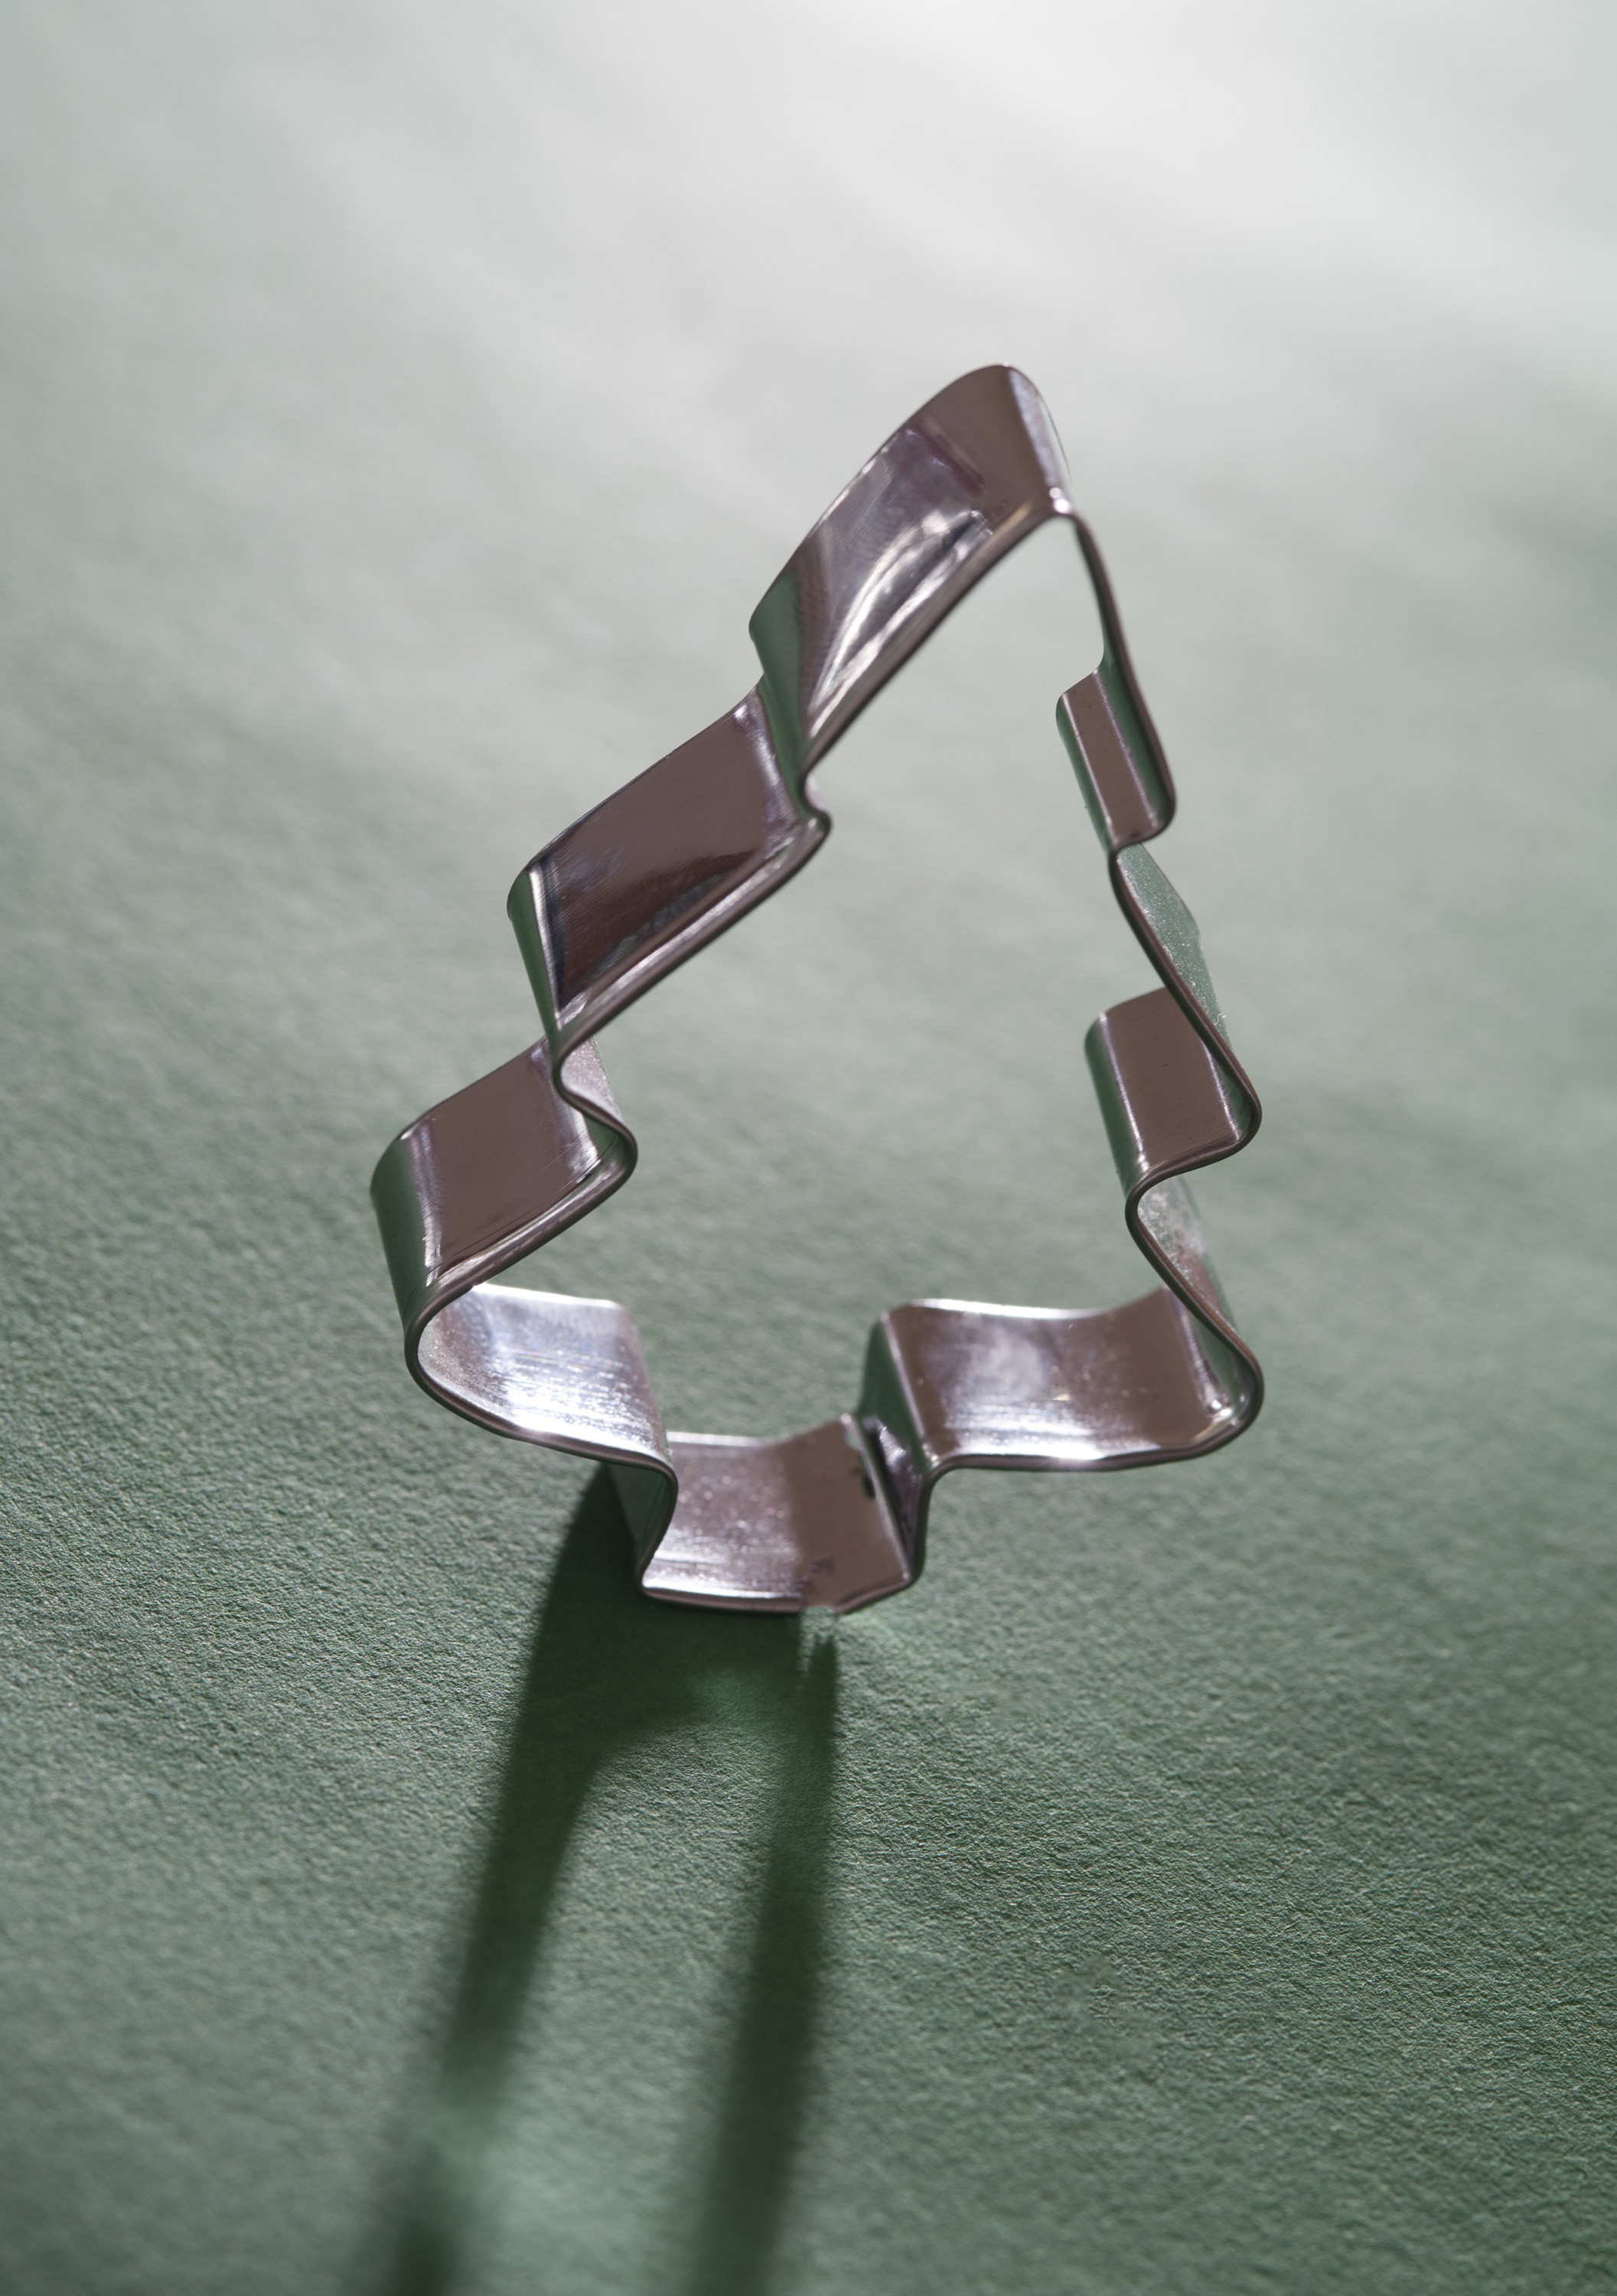 Close-up of Christmas tree cookie cutter